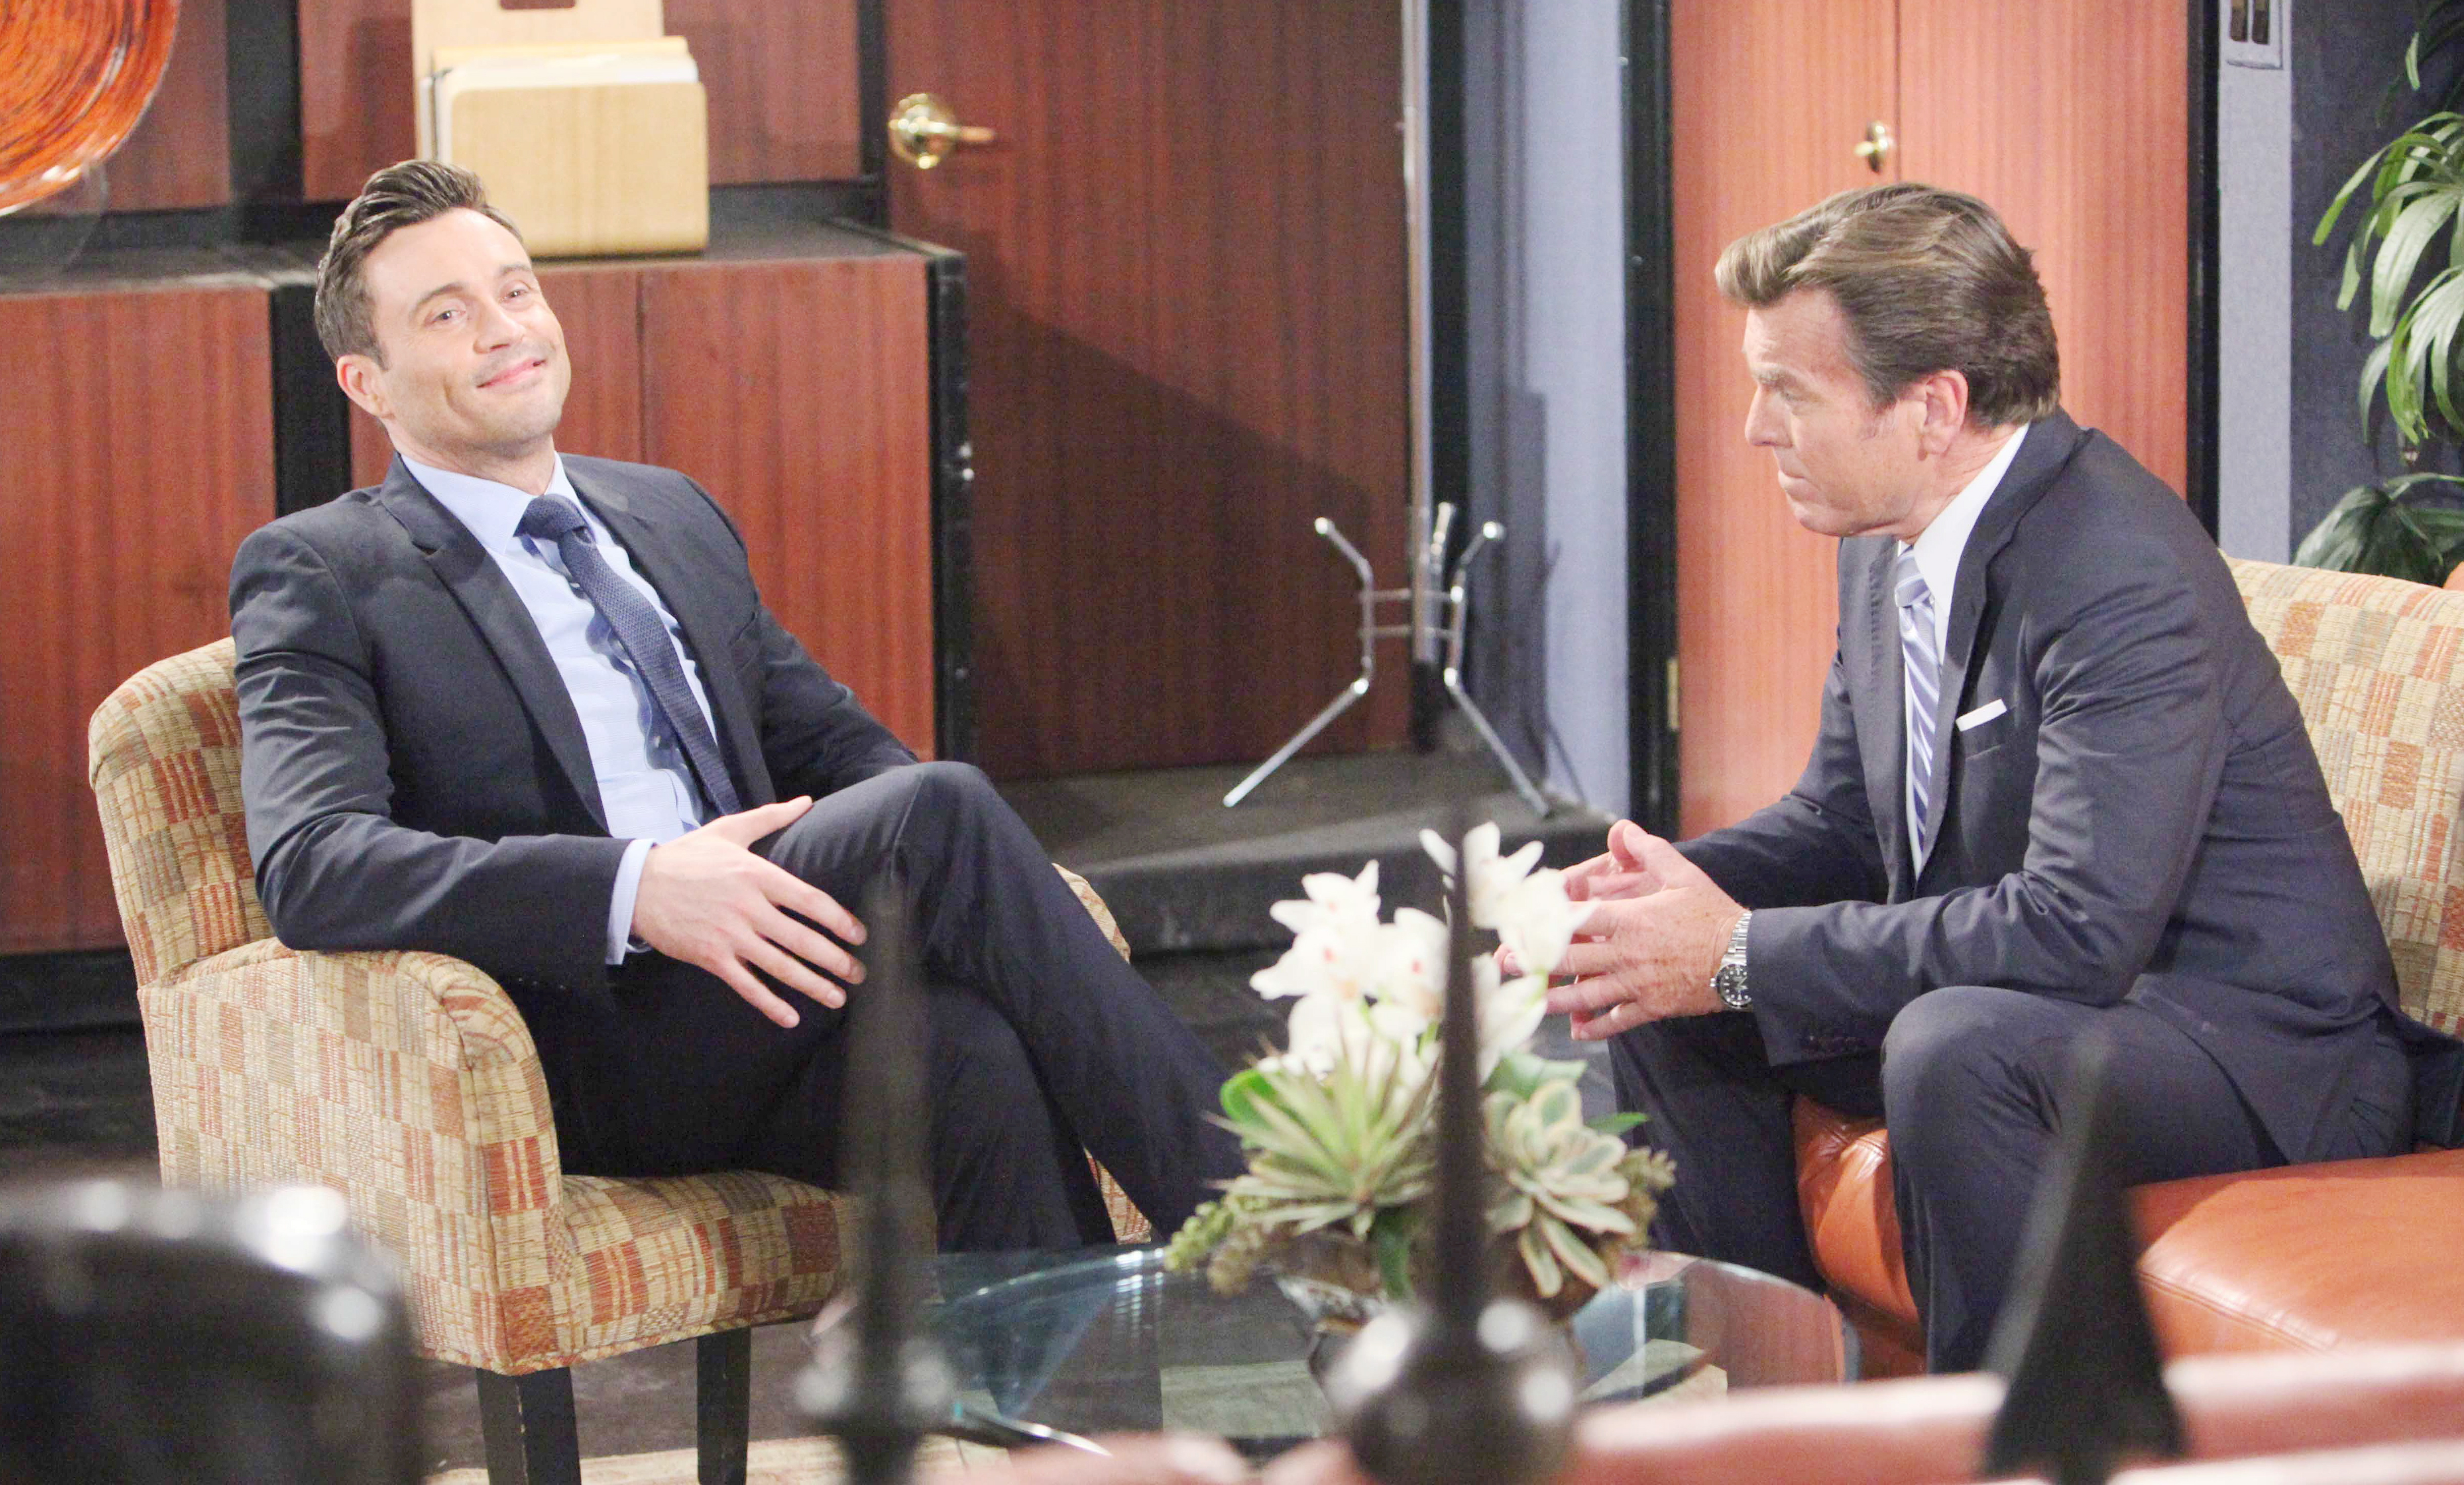 """Daniel Goddard, Peter Bergman """"The Young and the Restless"""" Set  CBS television City Los Angeles 06/09/17 © Howard Wsie/jpistudios.com/Sony Pictures Television 310-657-9661 Episode # 11226 U.S. Airdate 07/24/17"""